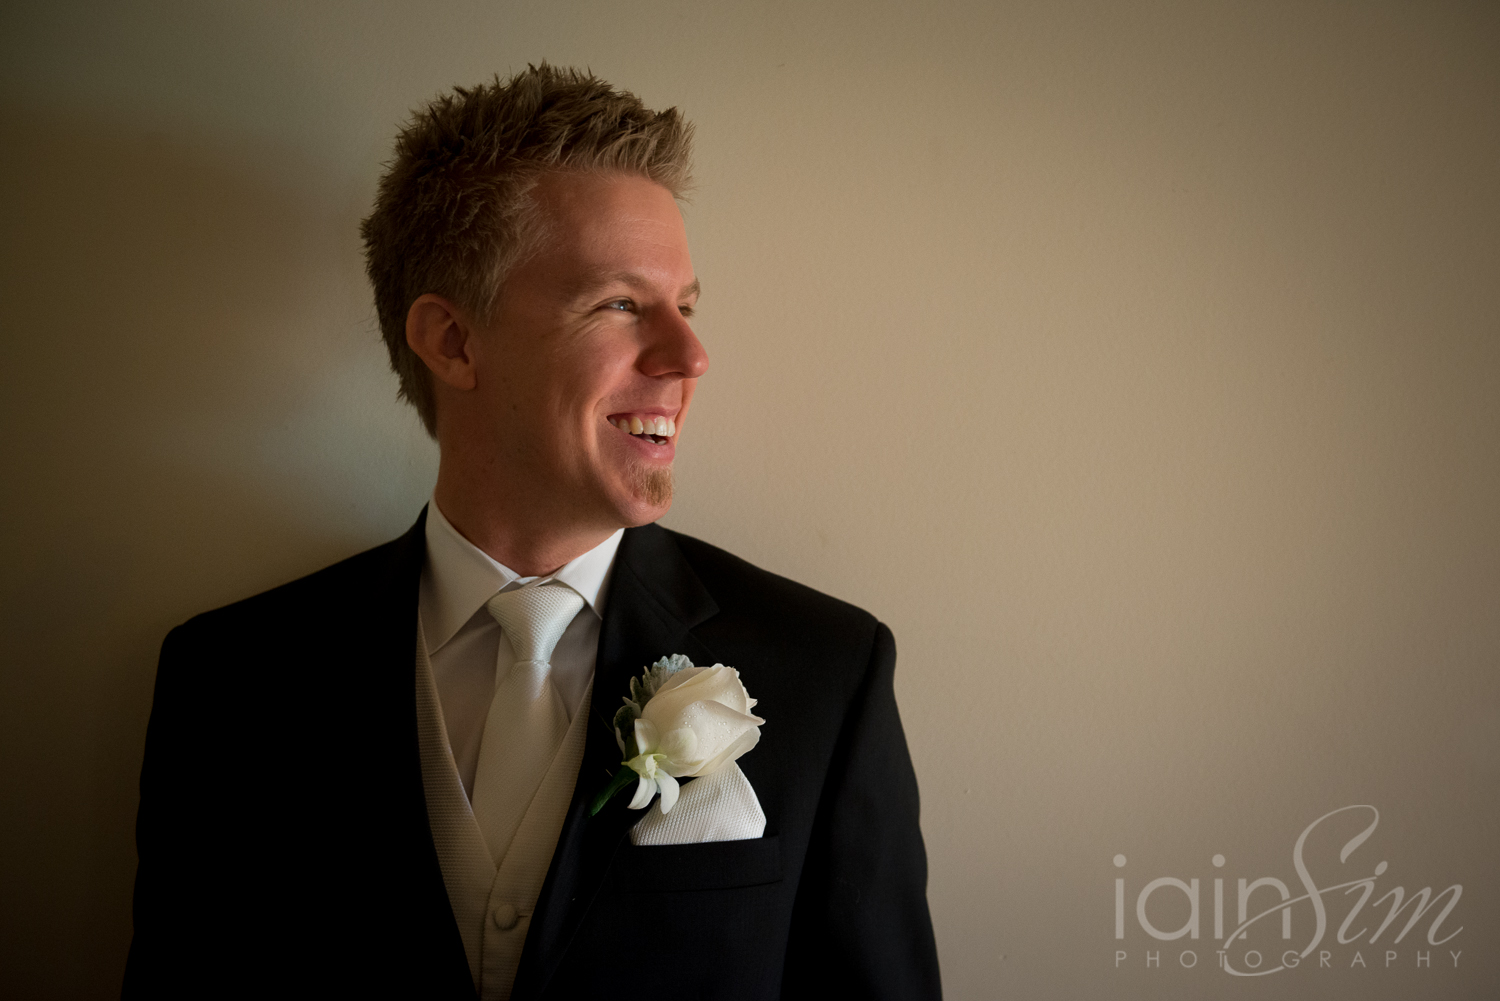 Dannii and James' Wedding at Doyles Mordialloc